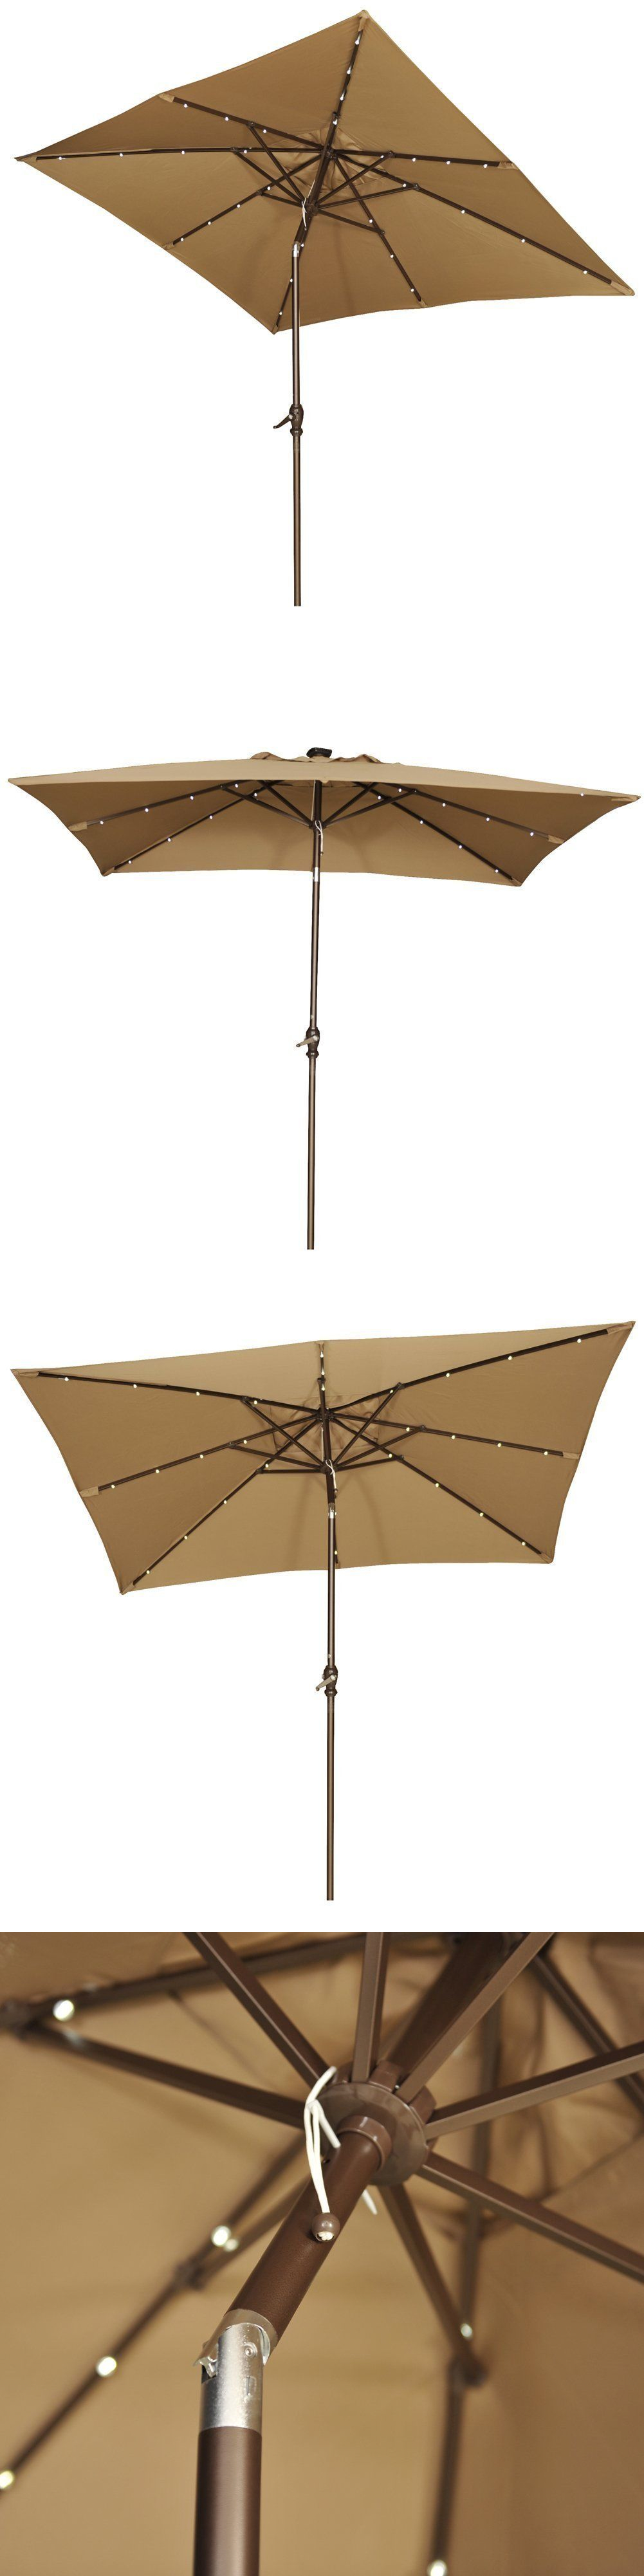 Rectangular Patio Umbrella With Solar Lights Gorgeous Umbrellas 180998 7X9 Ft Rectangular Patio Umbrella W Solar Powered Inspiration Design